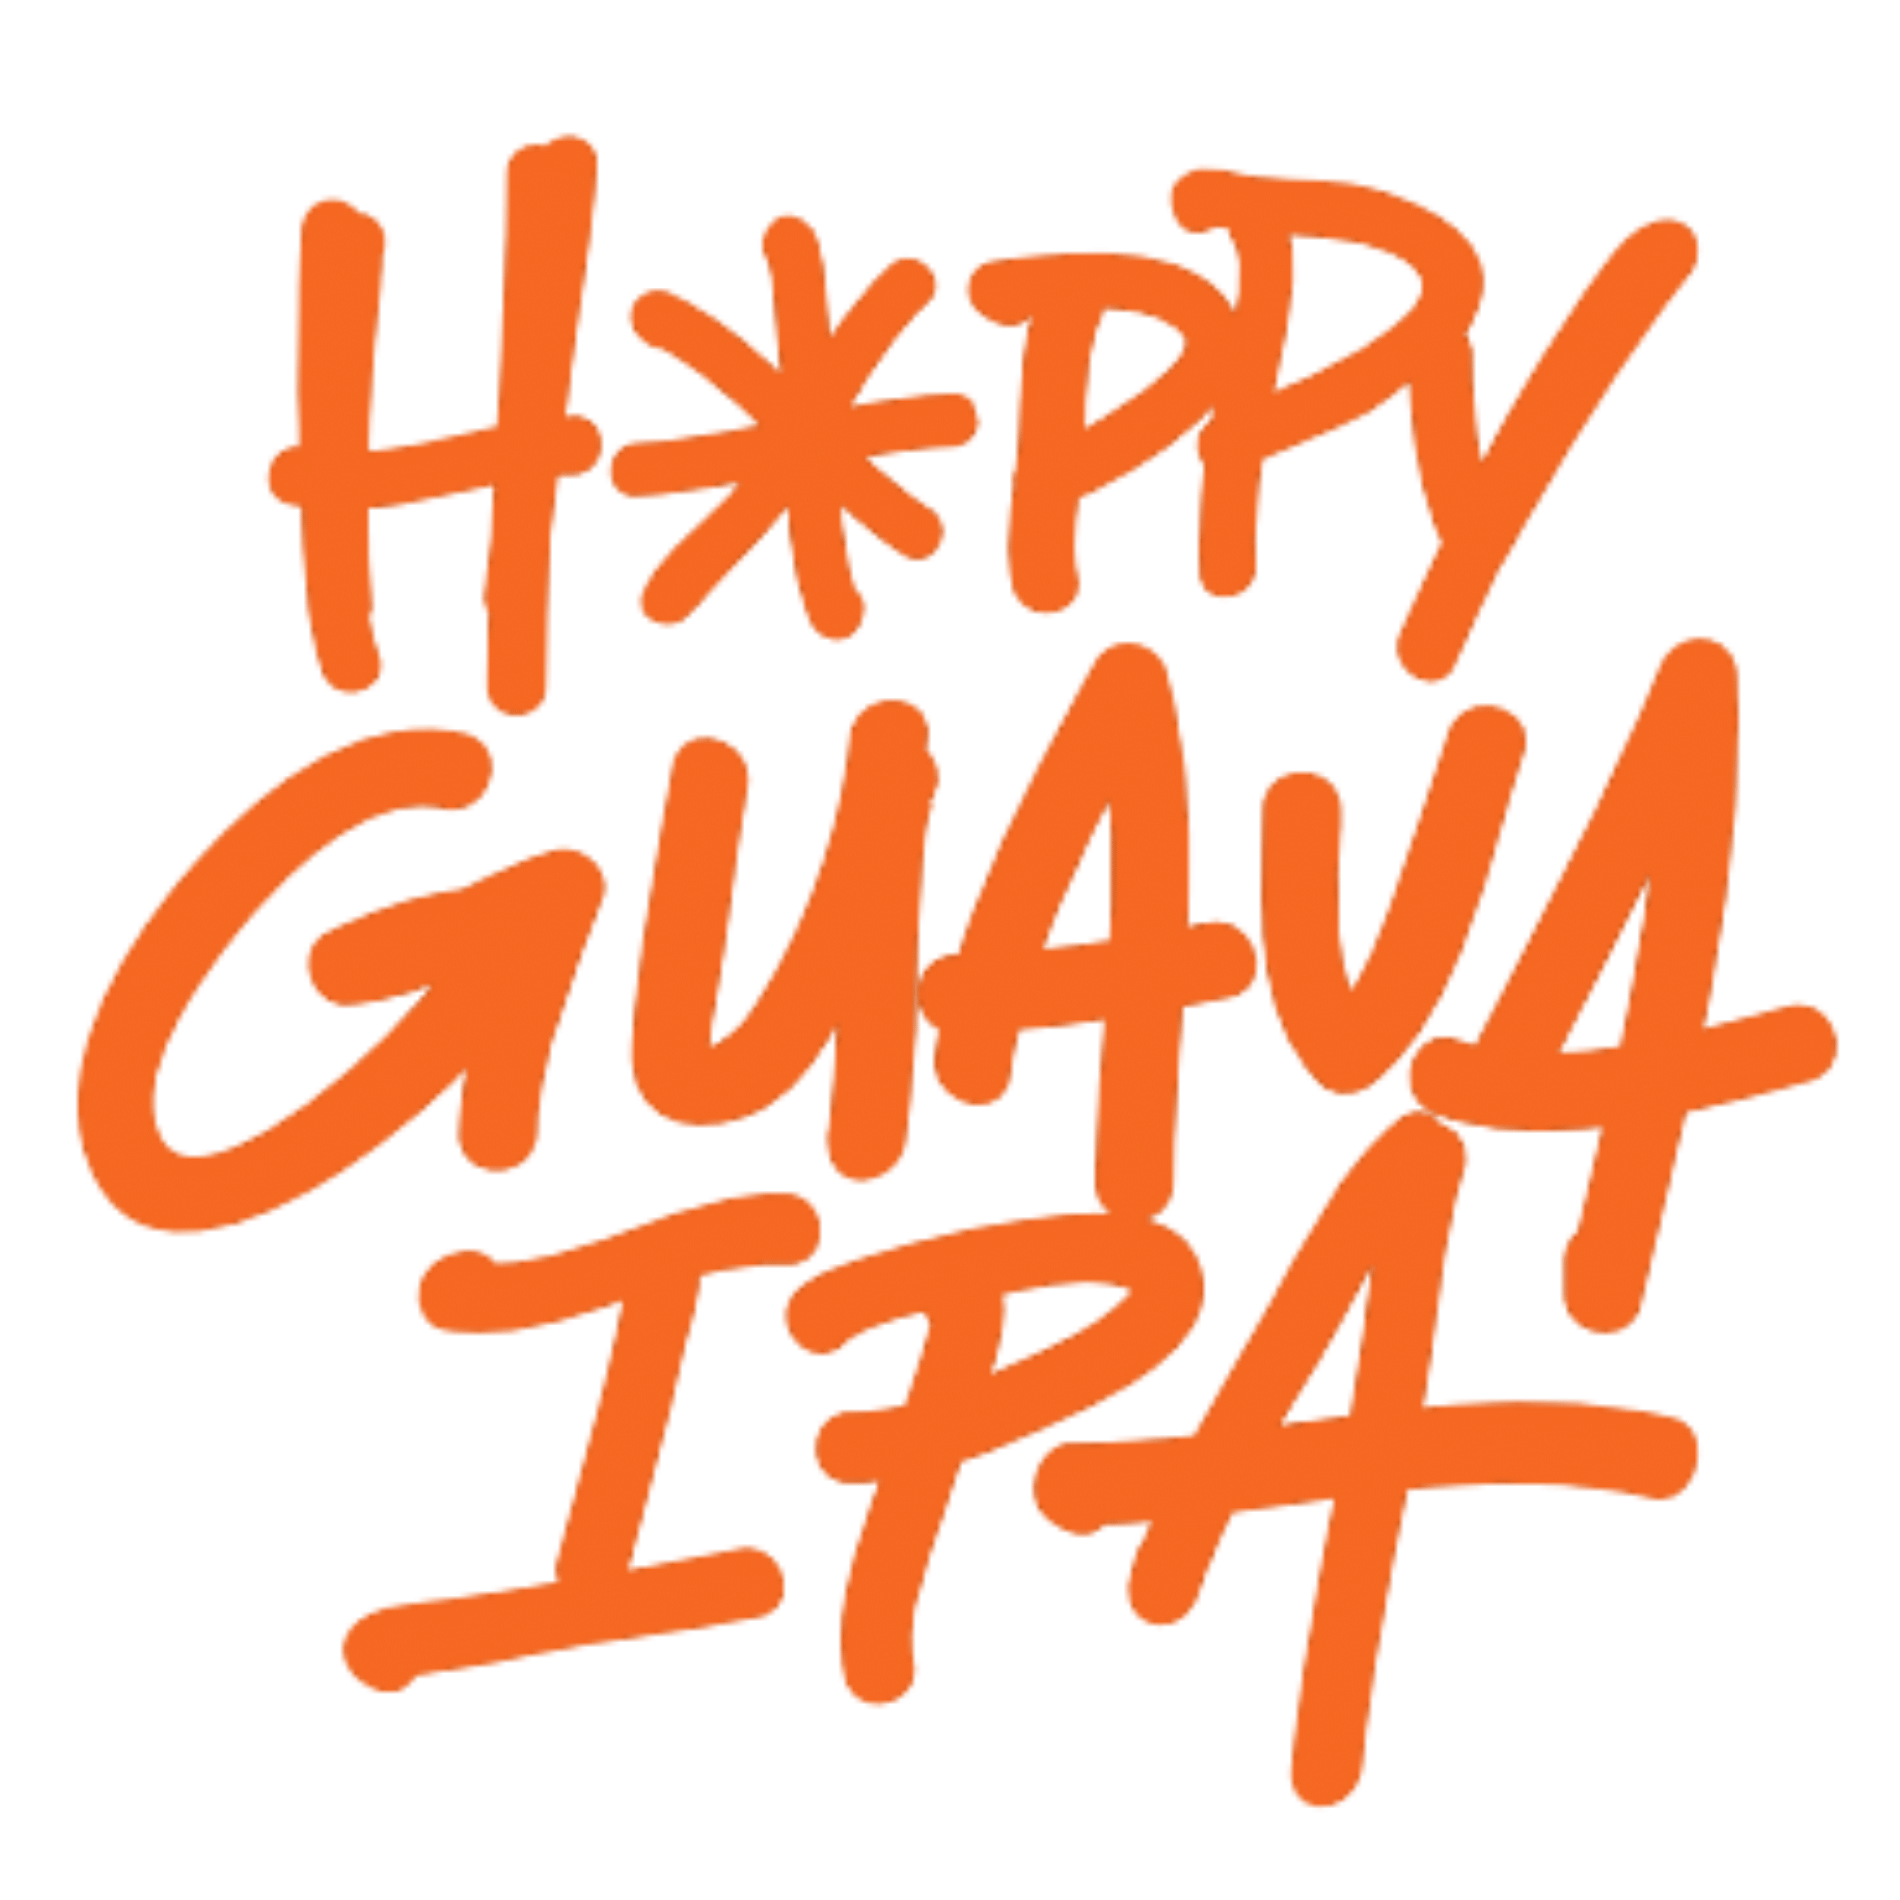 Hop For fun - Hoppy Guava Ipa